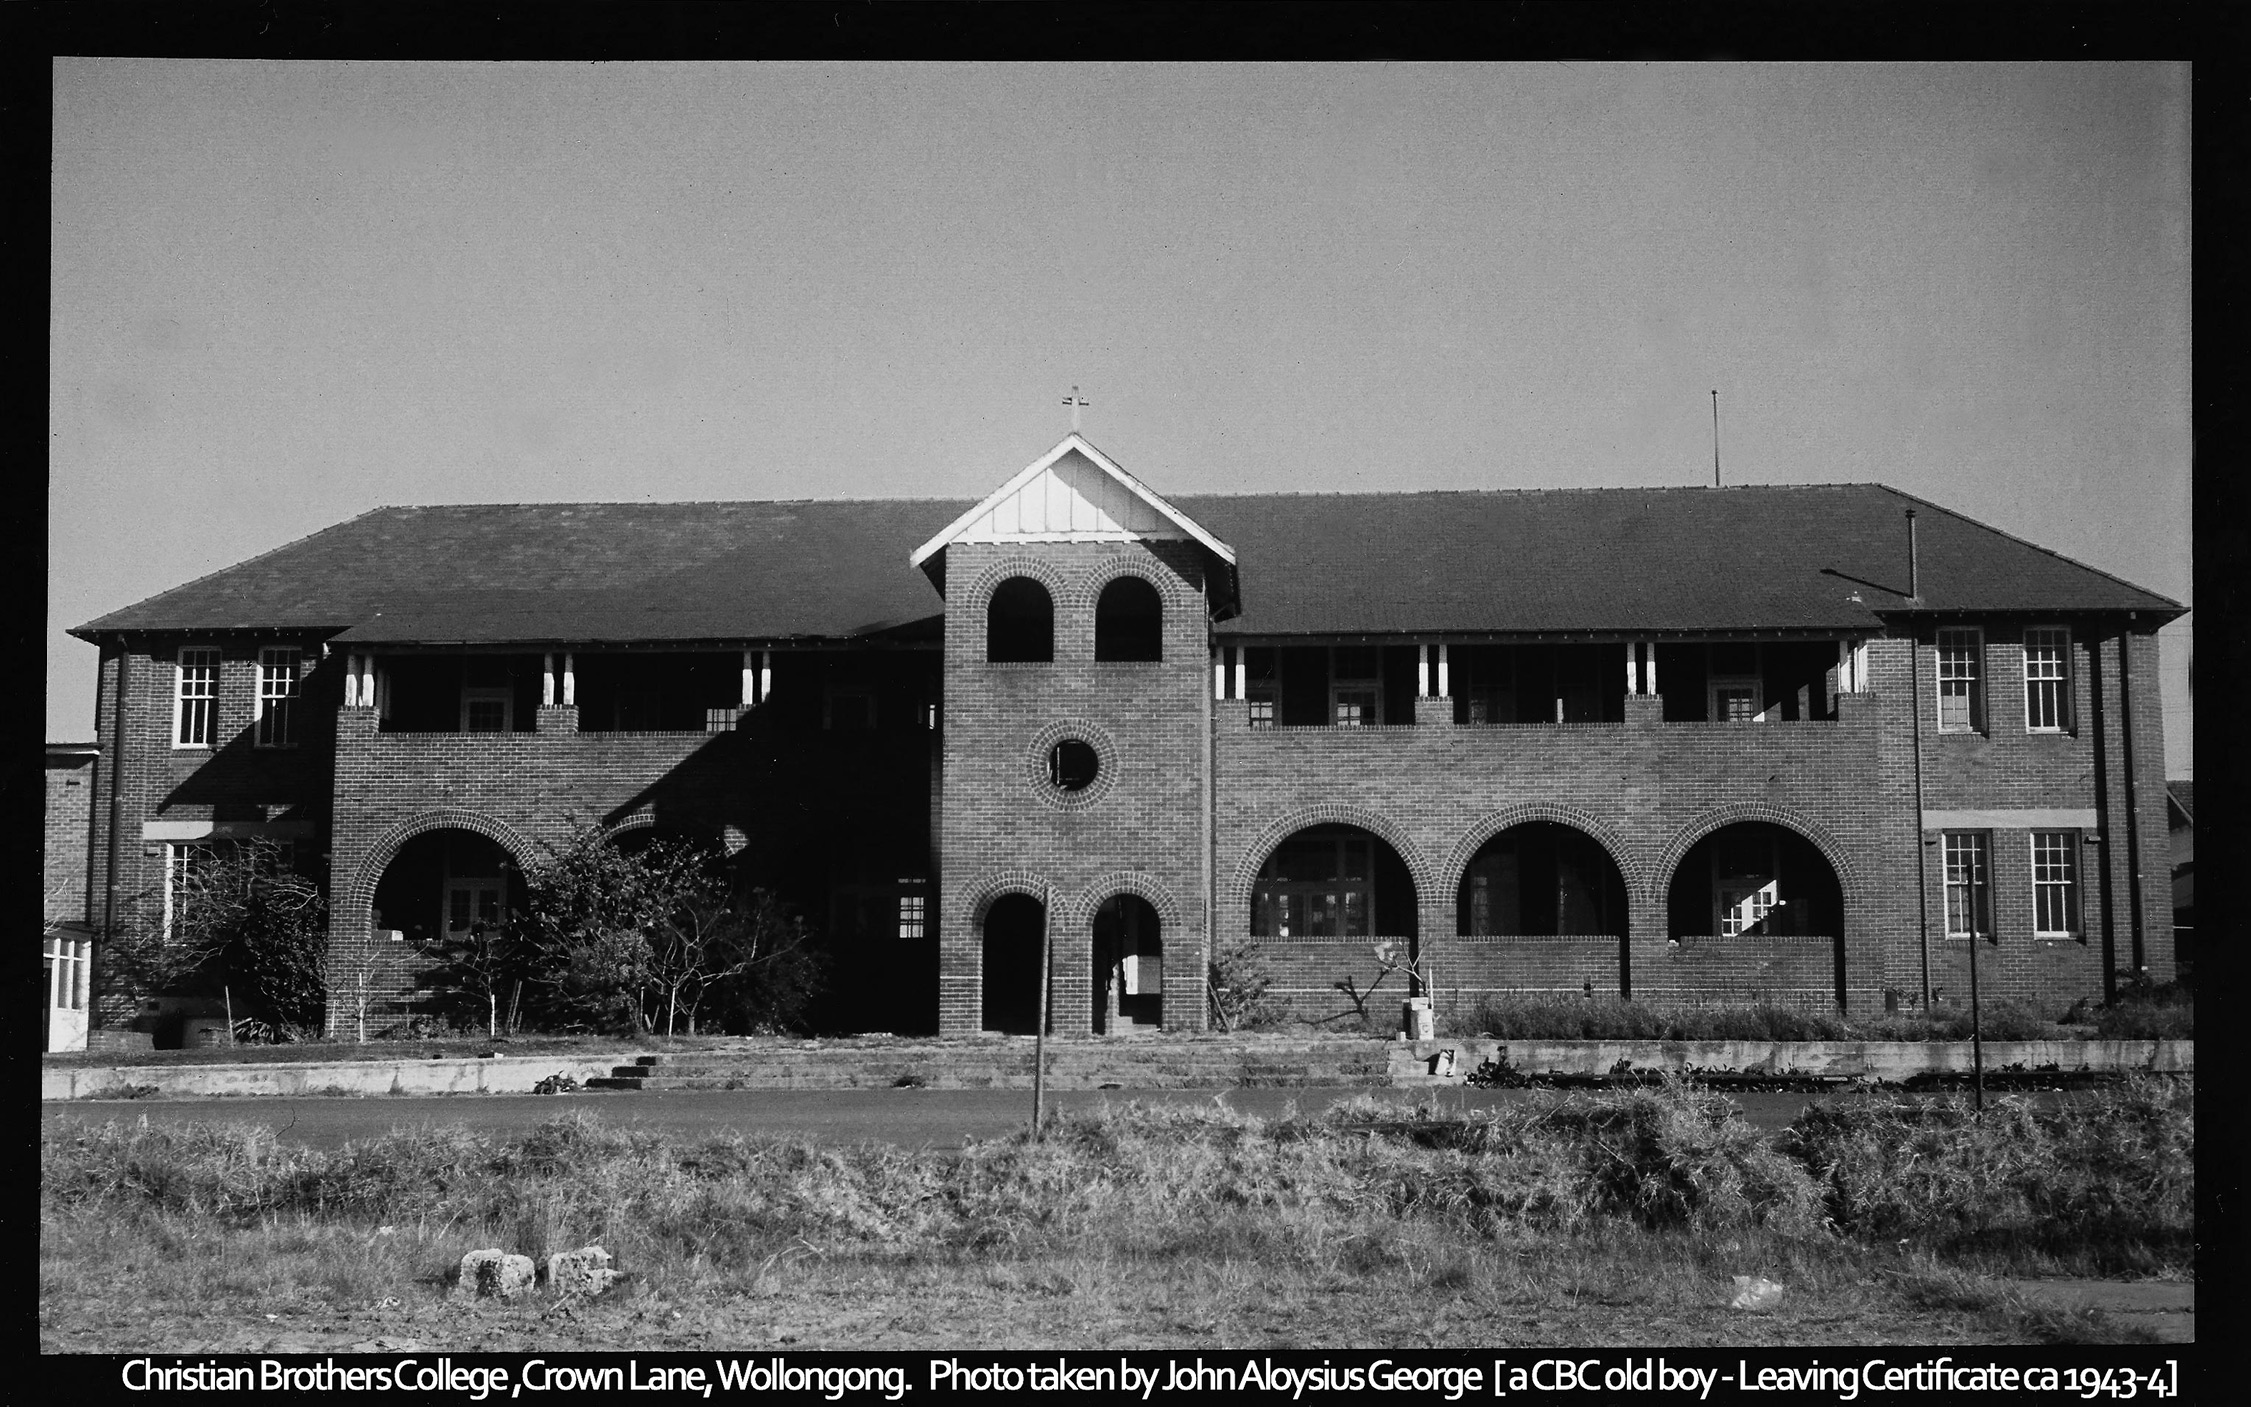 Archive image of Edmund Rice College